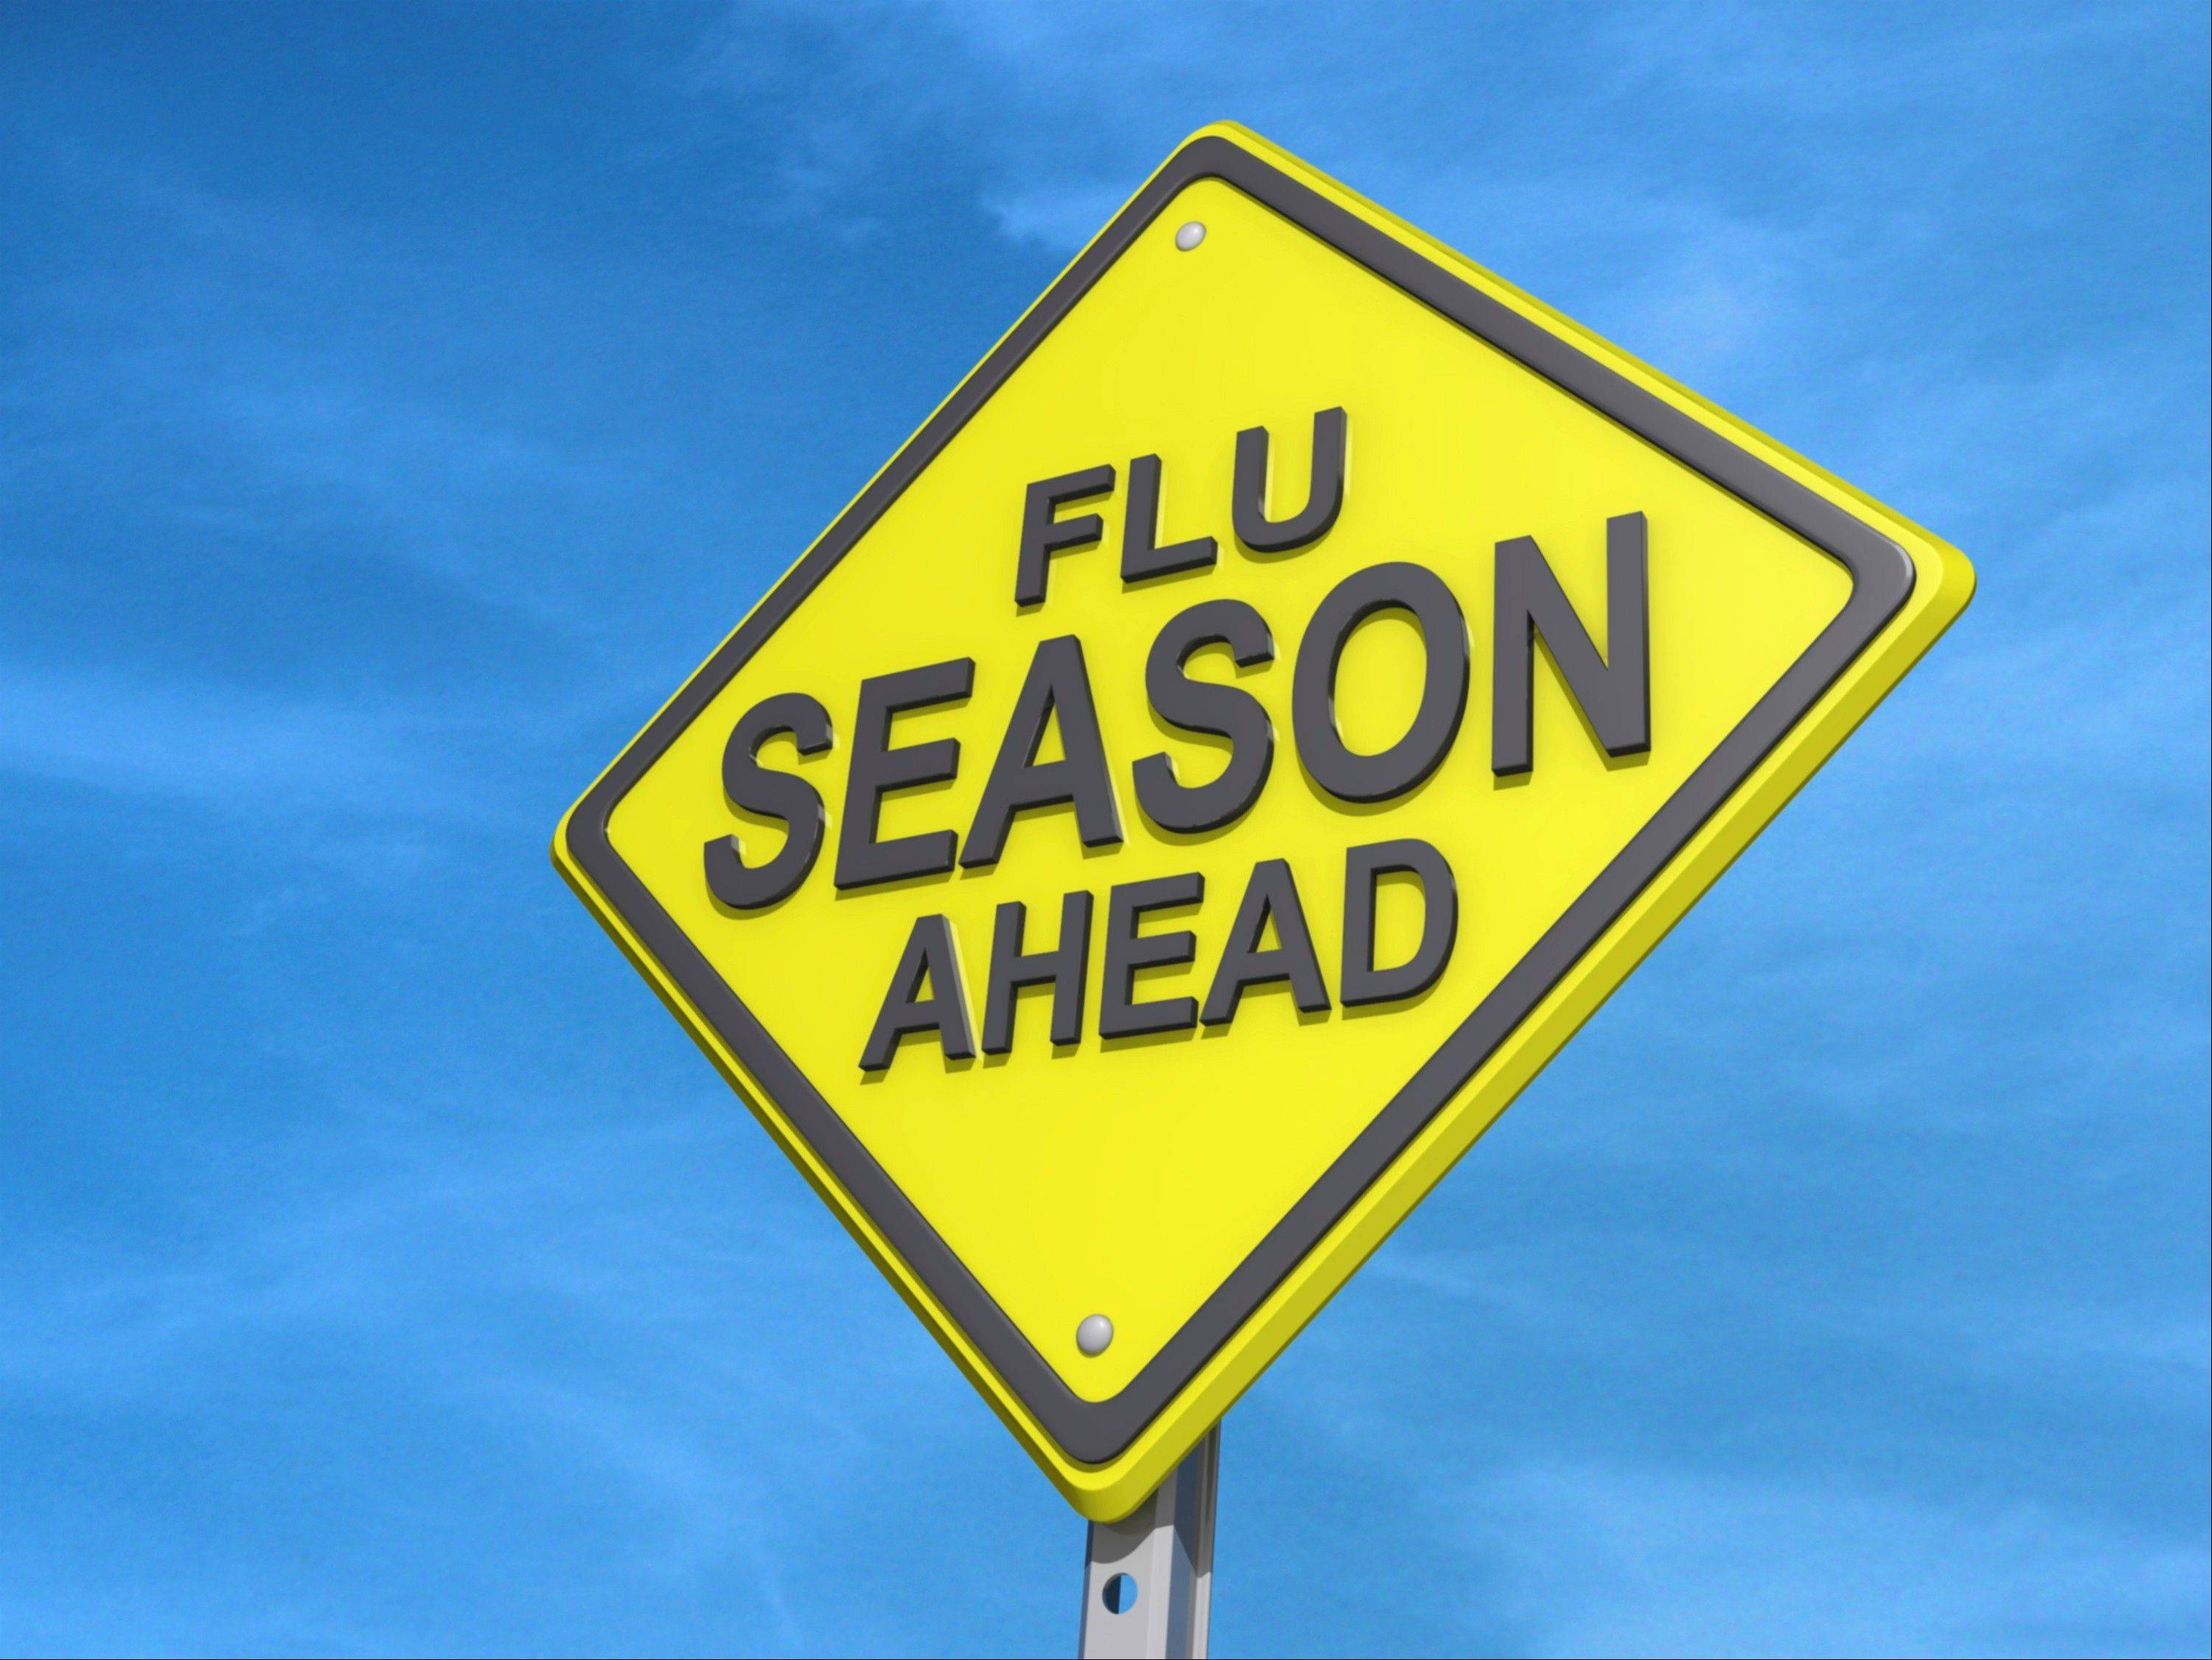 Prepare yourself for the impending flu season by knowing who has it in your neighborhood.